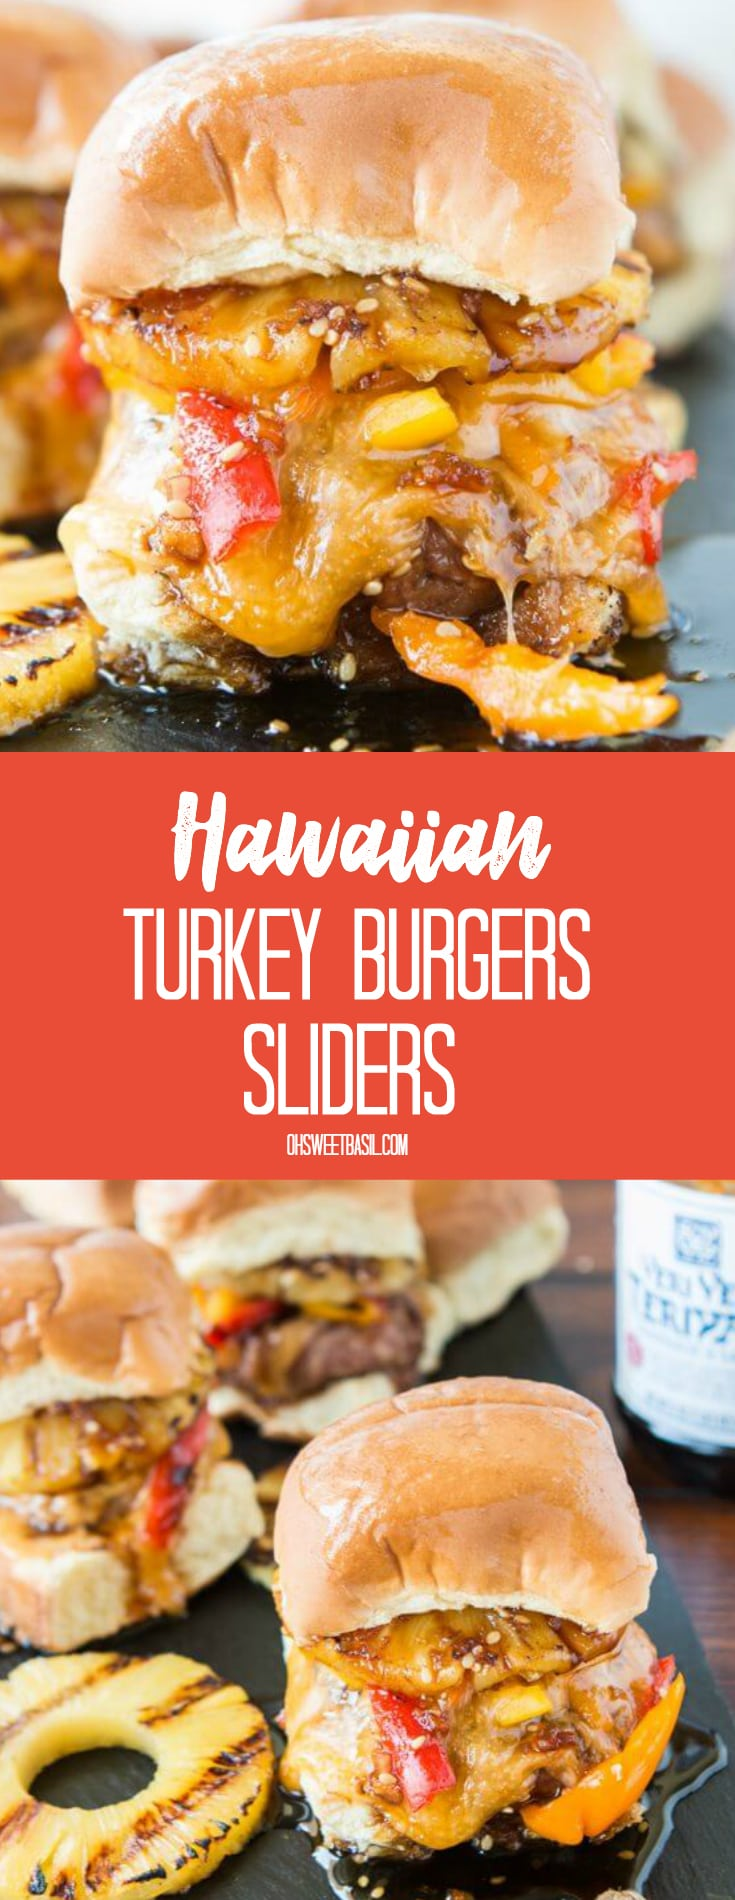 Hawaiian Turkey Burger Sliders with grilled pineapple, melted cheese, turkey and soy sauce